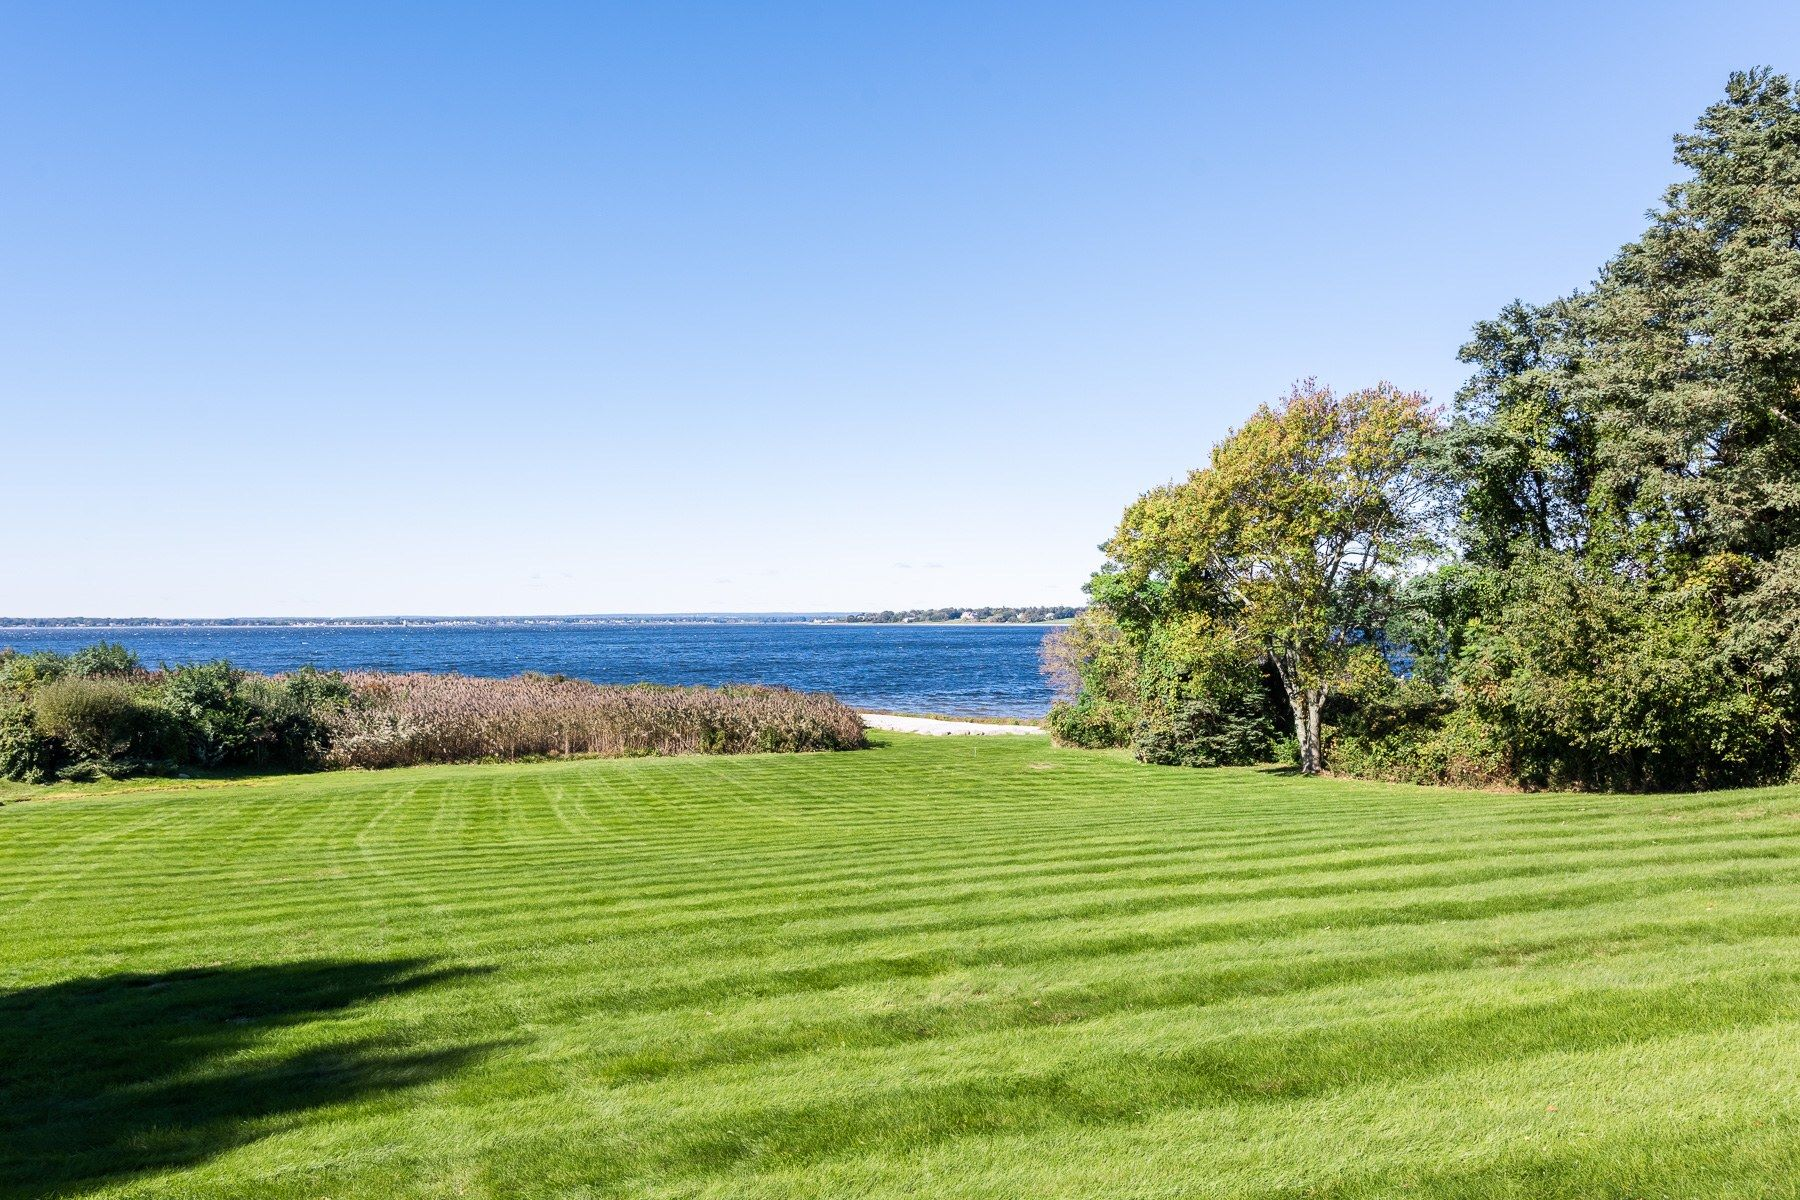 Land for Sale at 0 Pheasant Lane, Barrington, RI 0 Pheasant Lane Barrington, Rhode Island 02806 United States